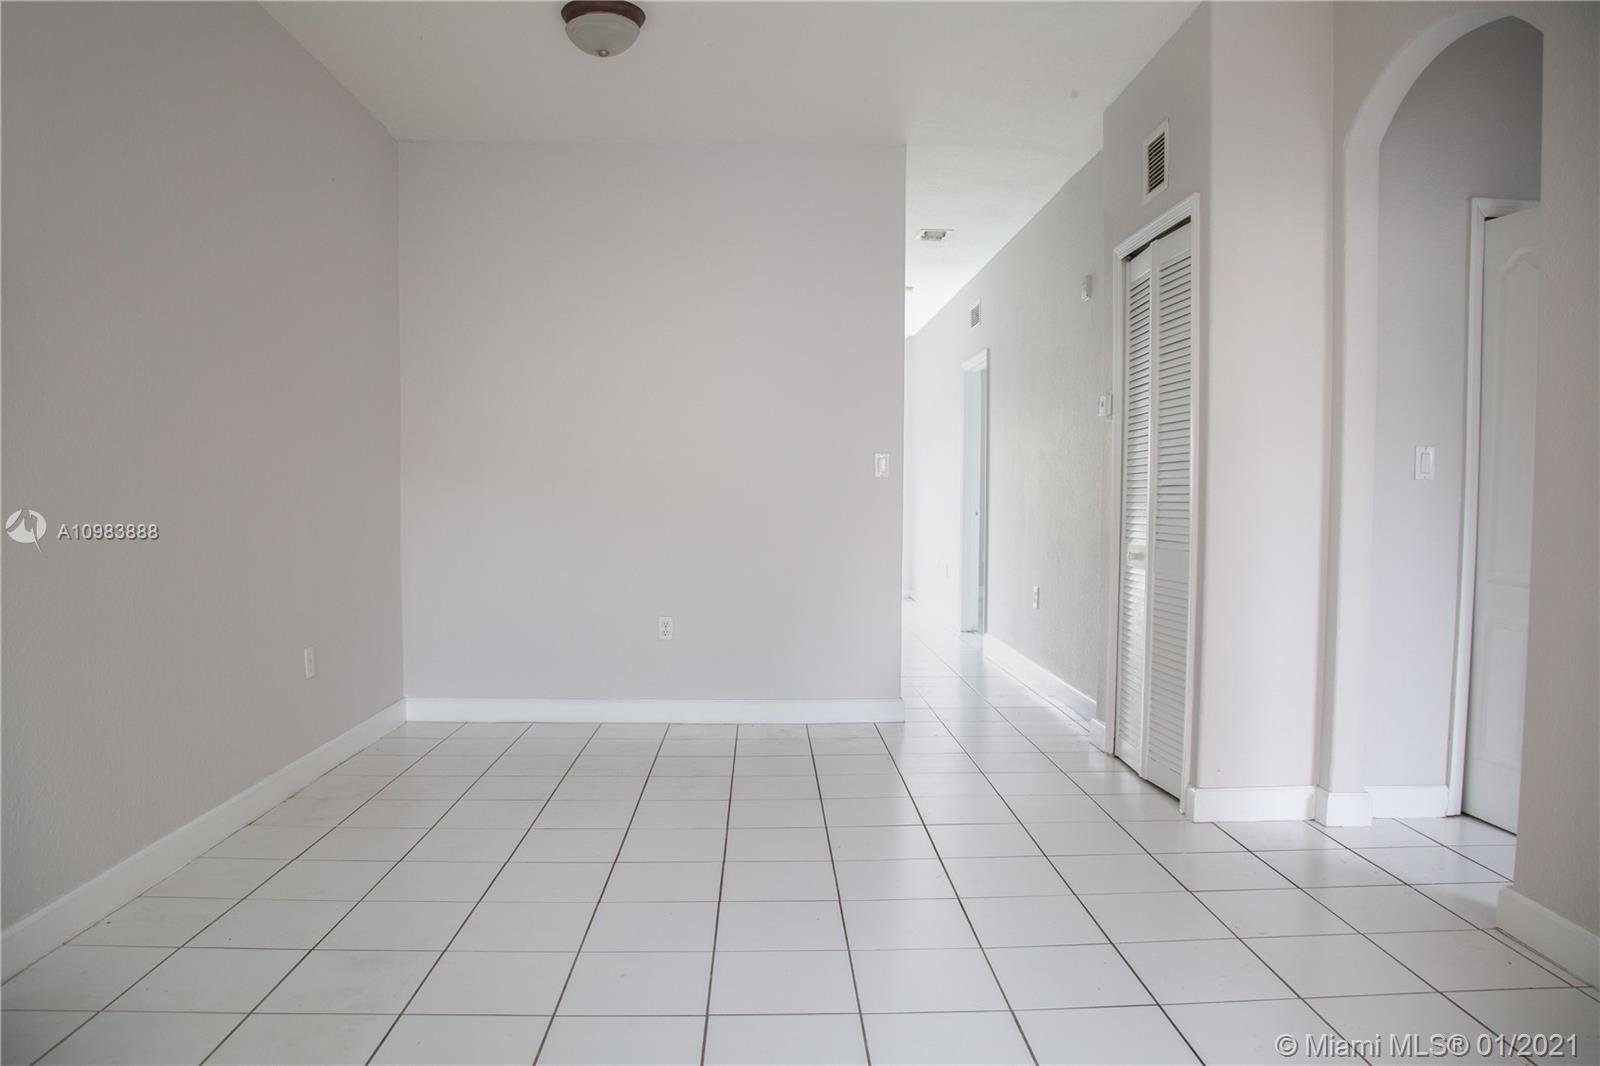 A10983888 Property Photo